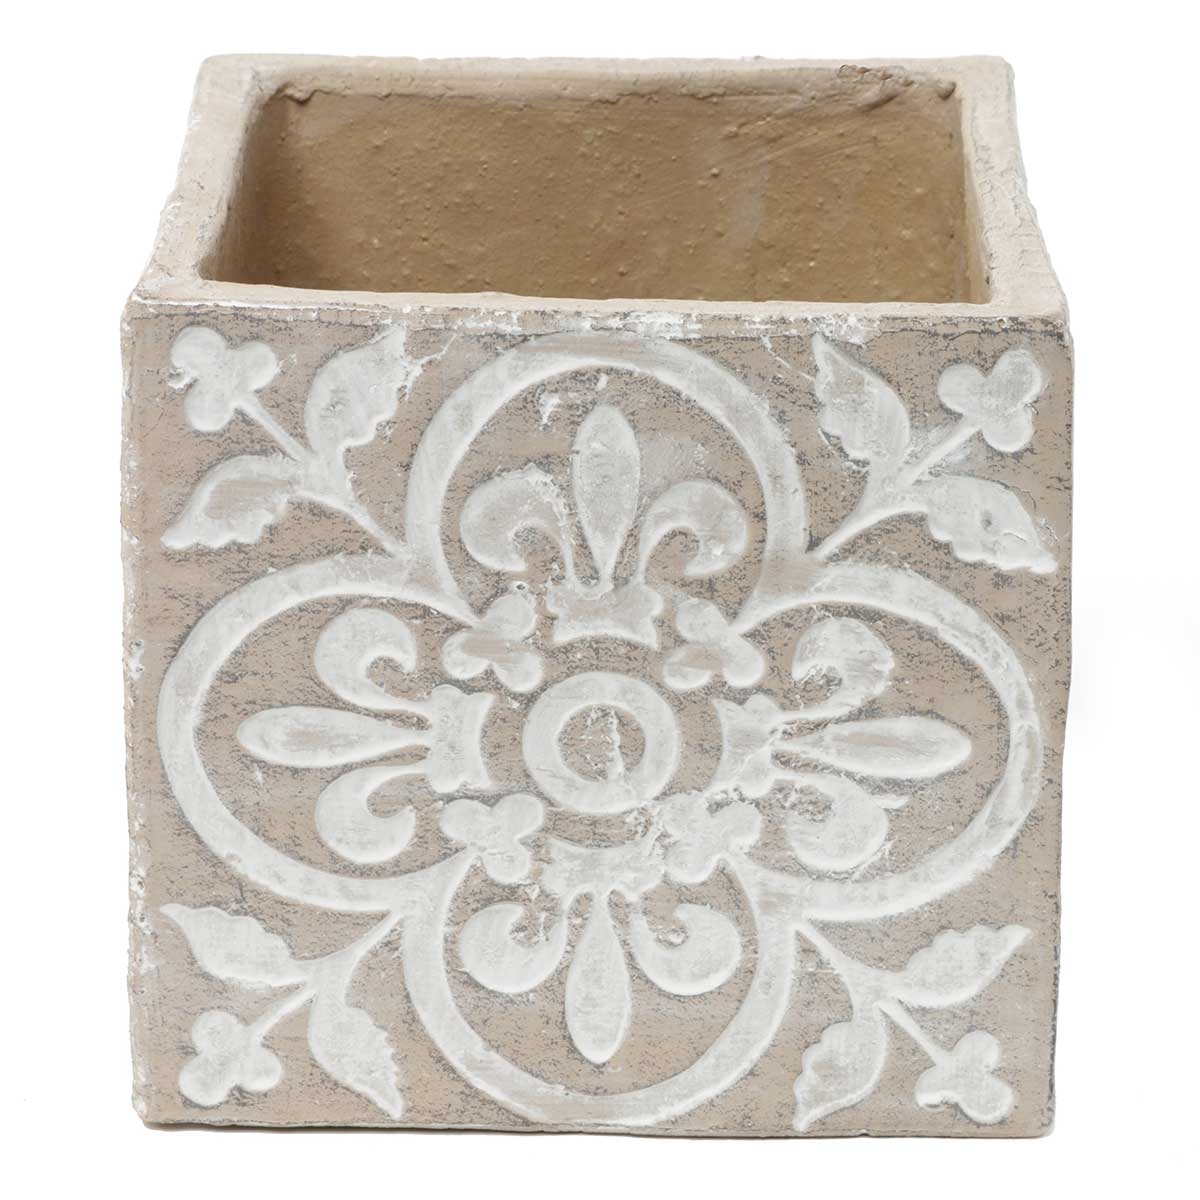 "DECORATIVE SQUARE FLORAL MEDALLION POT 6.75""X6.75"" TAN/WHITE"